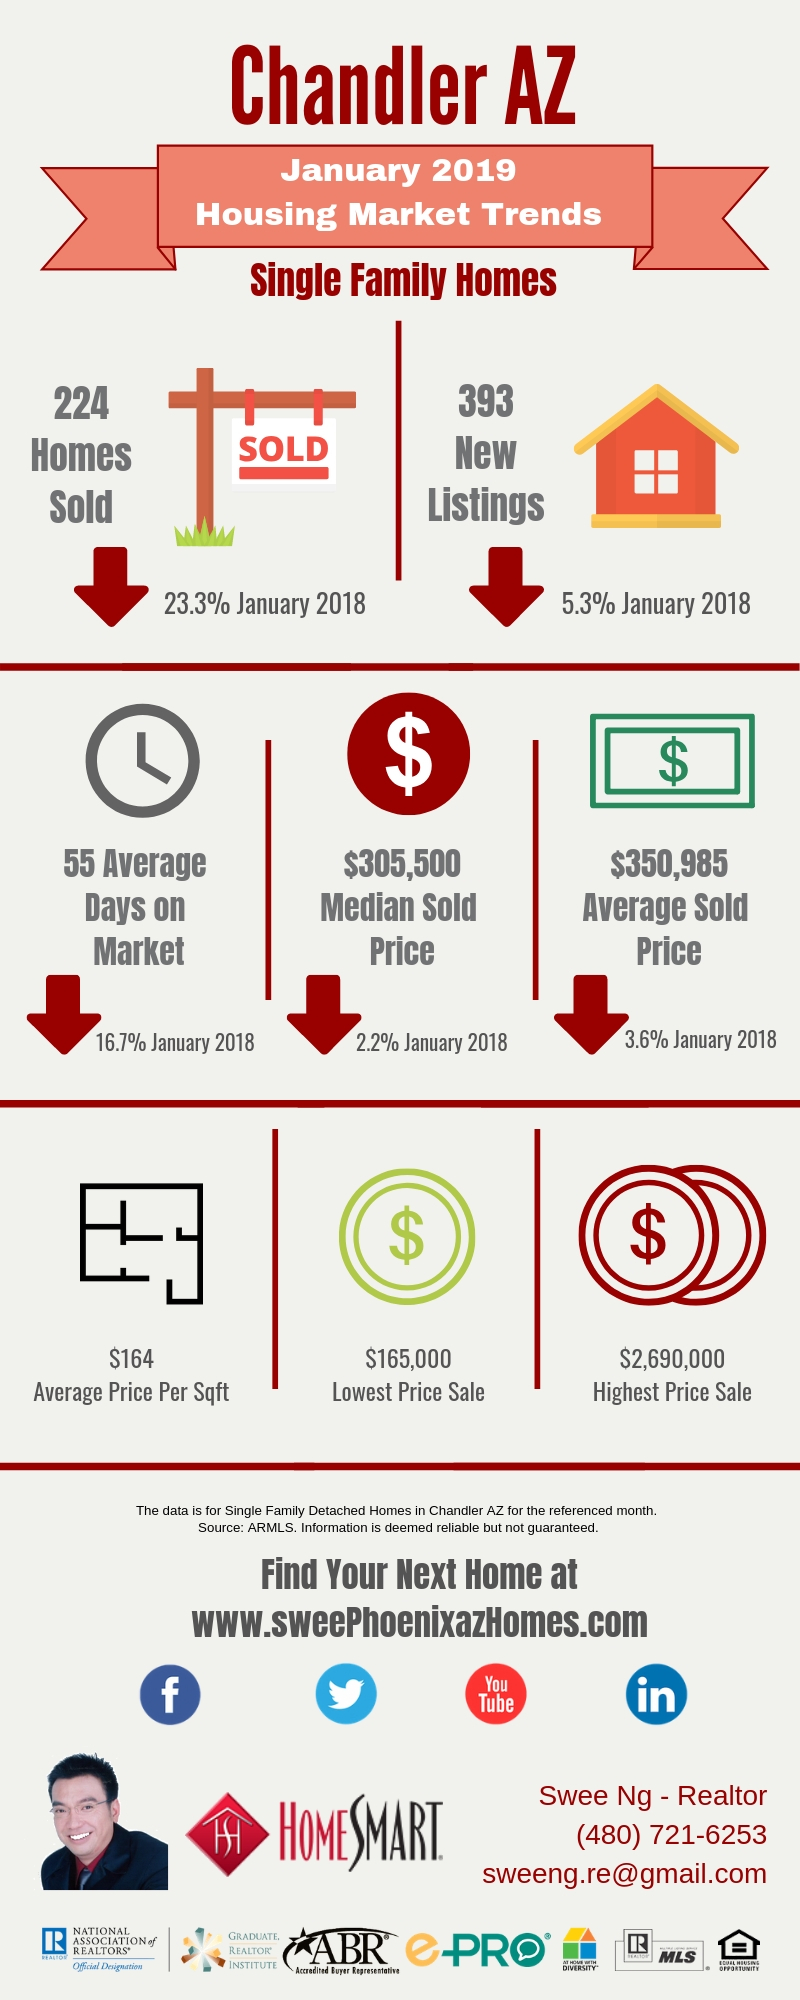 Chandler AZ Housing Market Update January 2019 by Swee Ng, House Value and Real Estate Listings